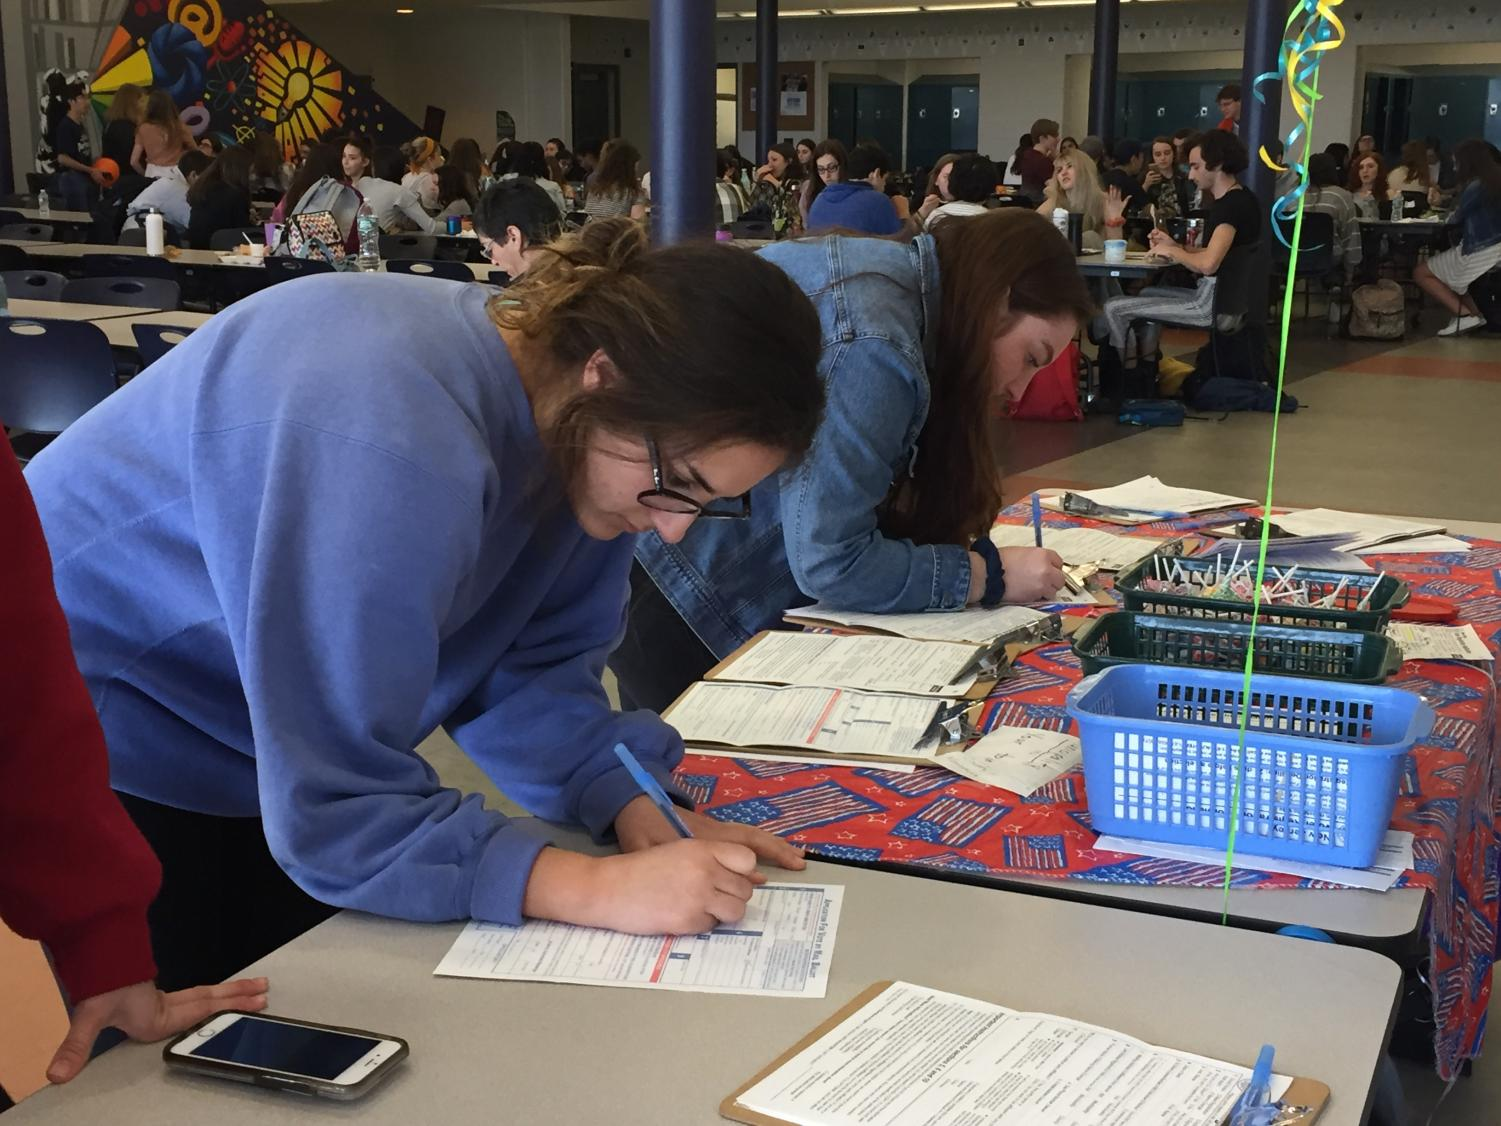 Seniors Courtney Kushnir of Colts Neck and Shannon Damiano of Spring Lake Heights fill out voter registration forms.